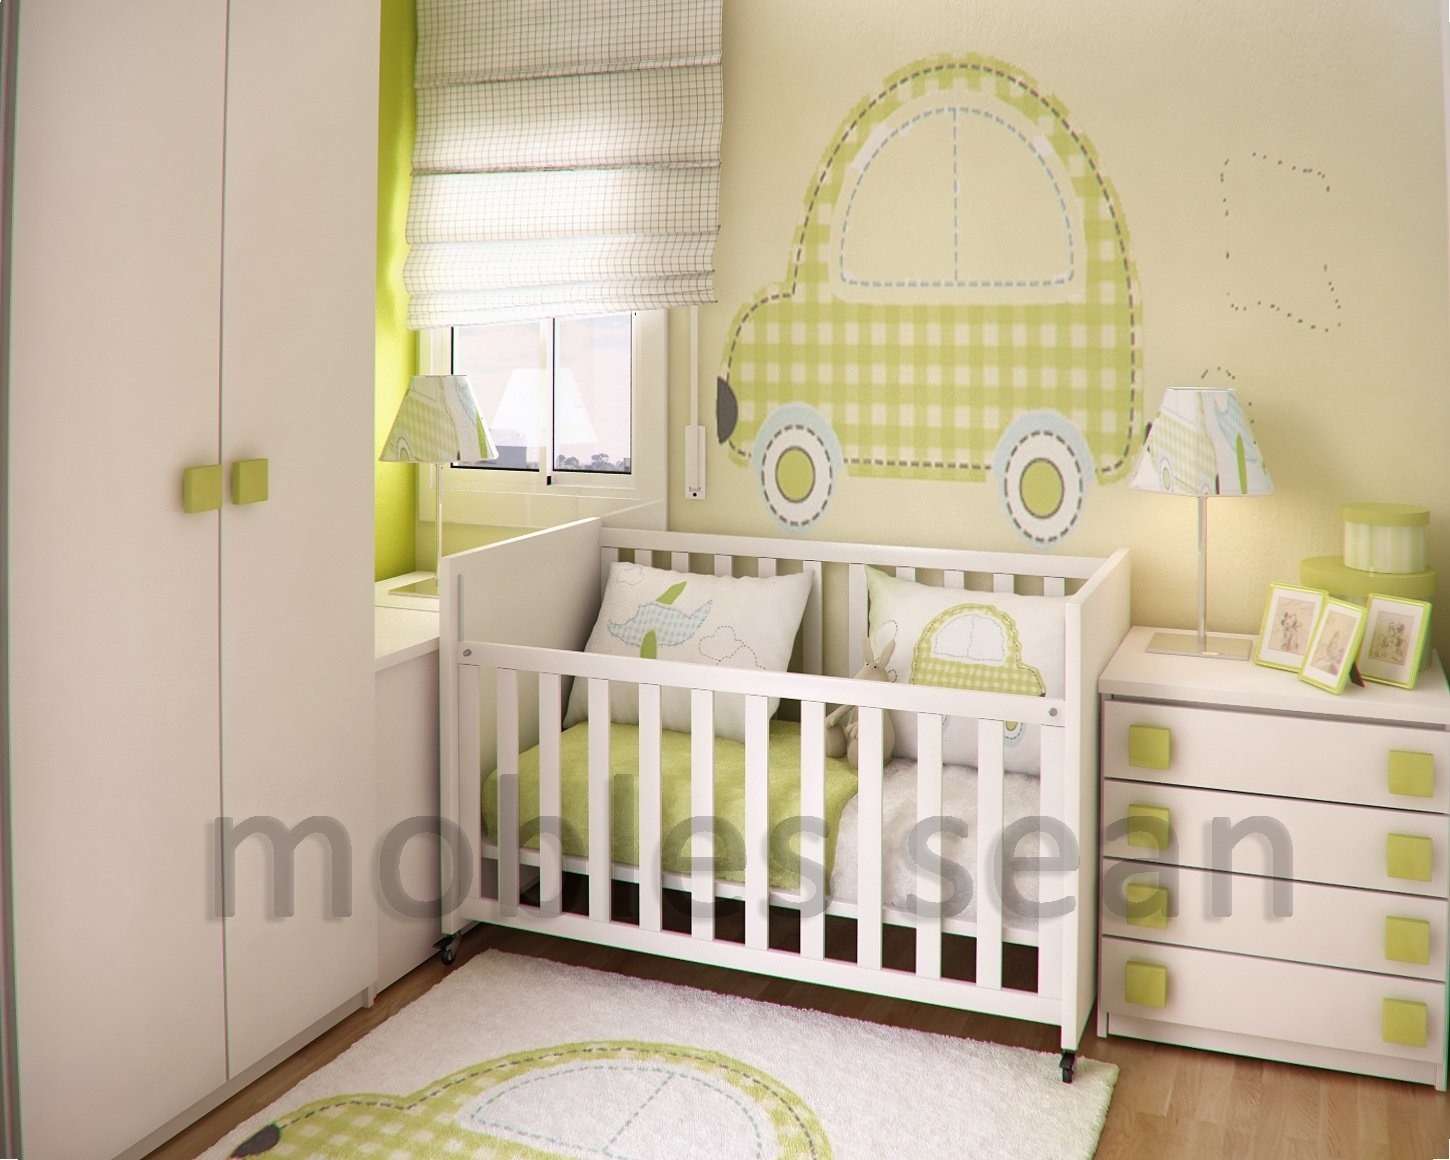 10 Cute Nursery Ideas For Small Spaces green white baby nursery room decobizz 2020